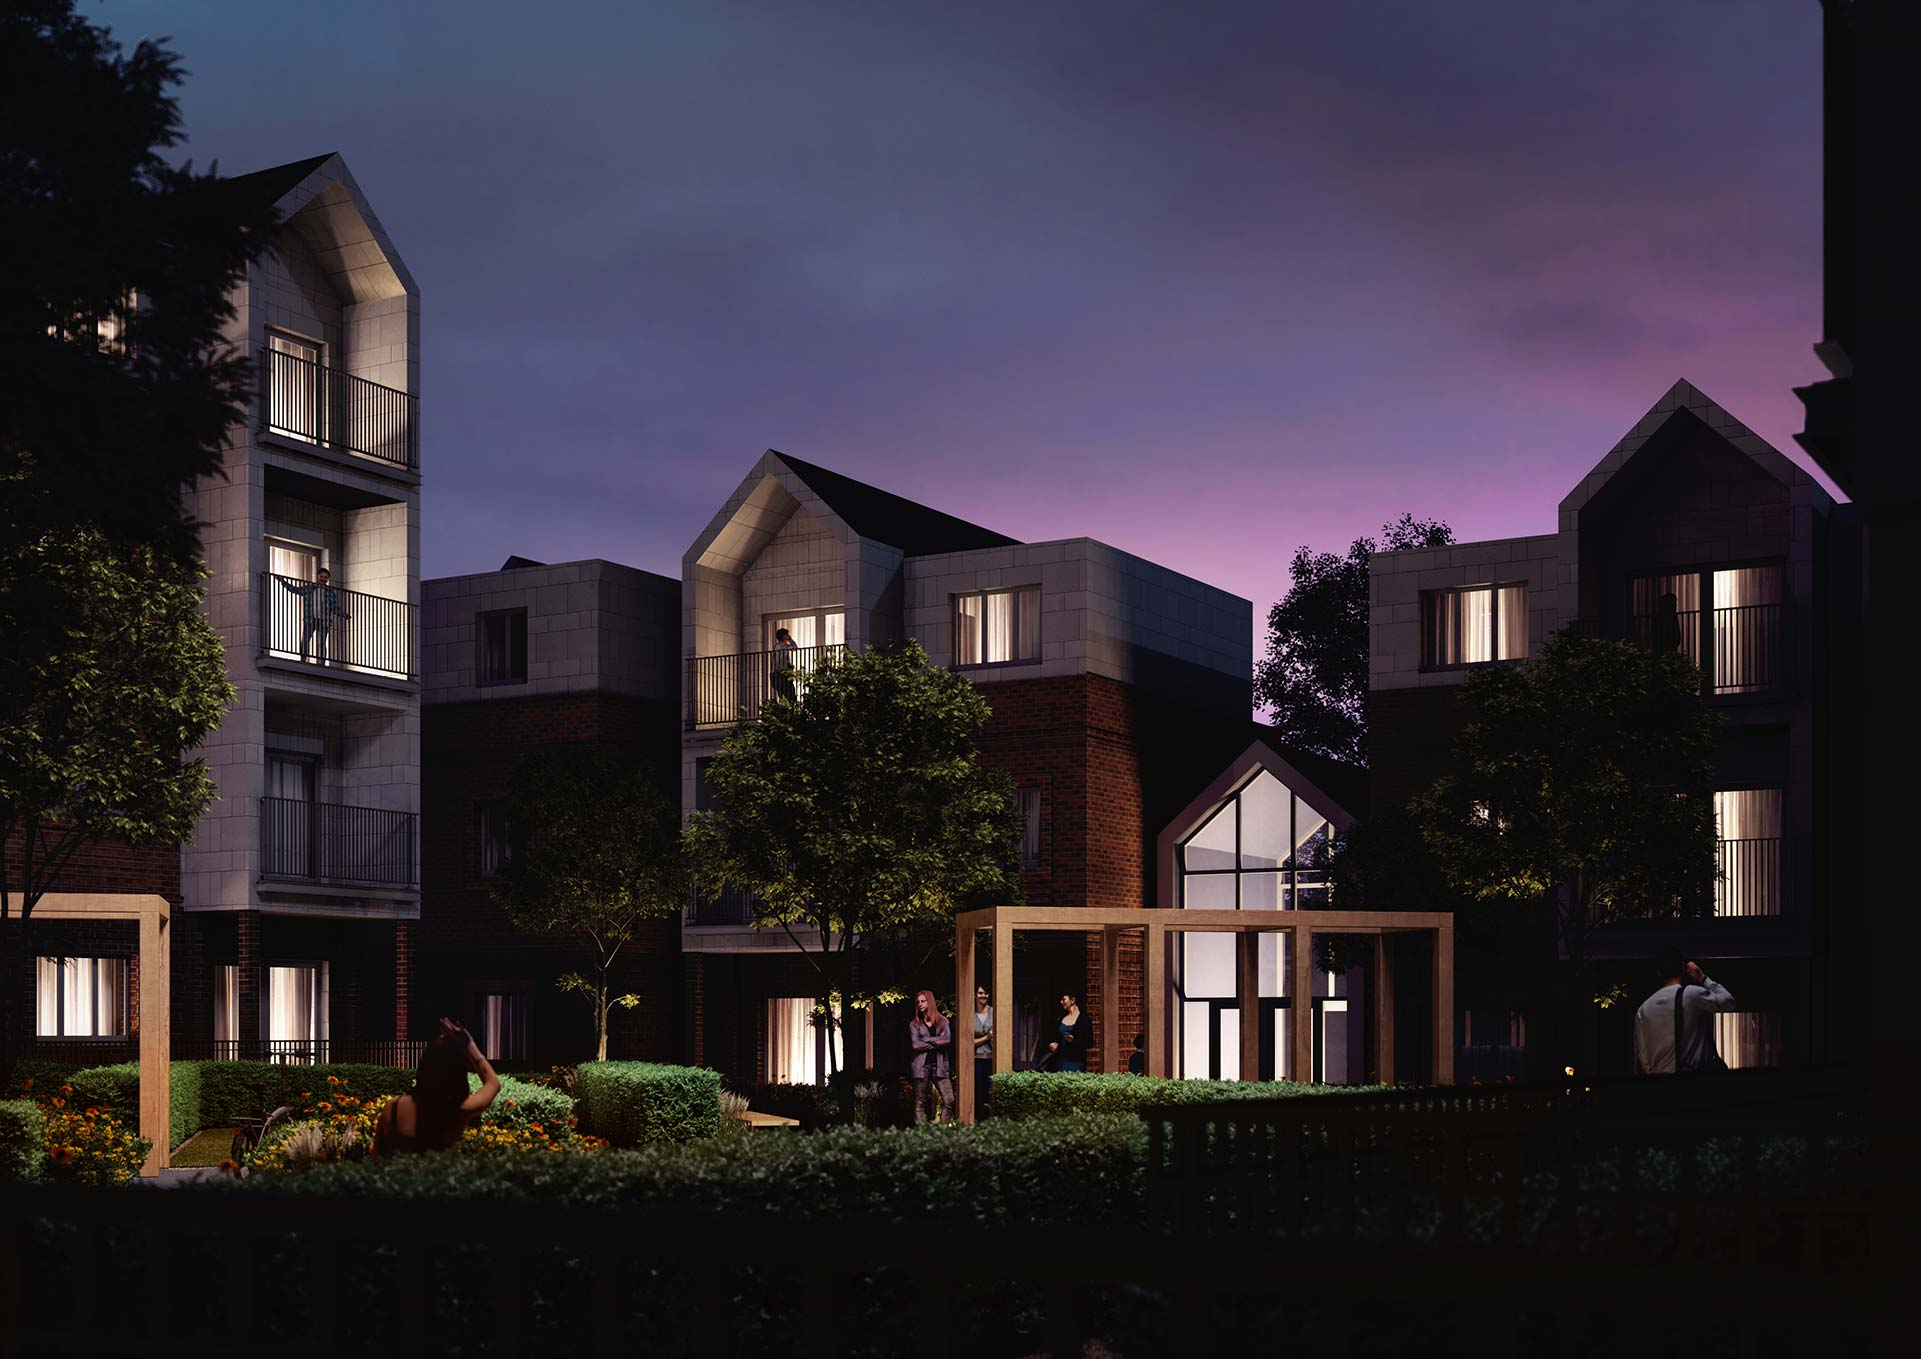 Night Architectural Render of Flats